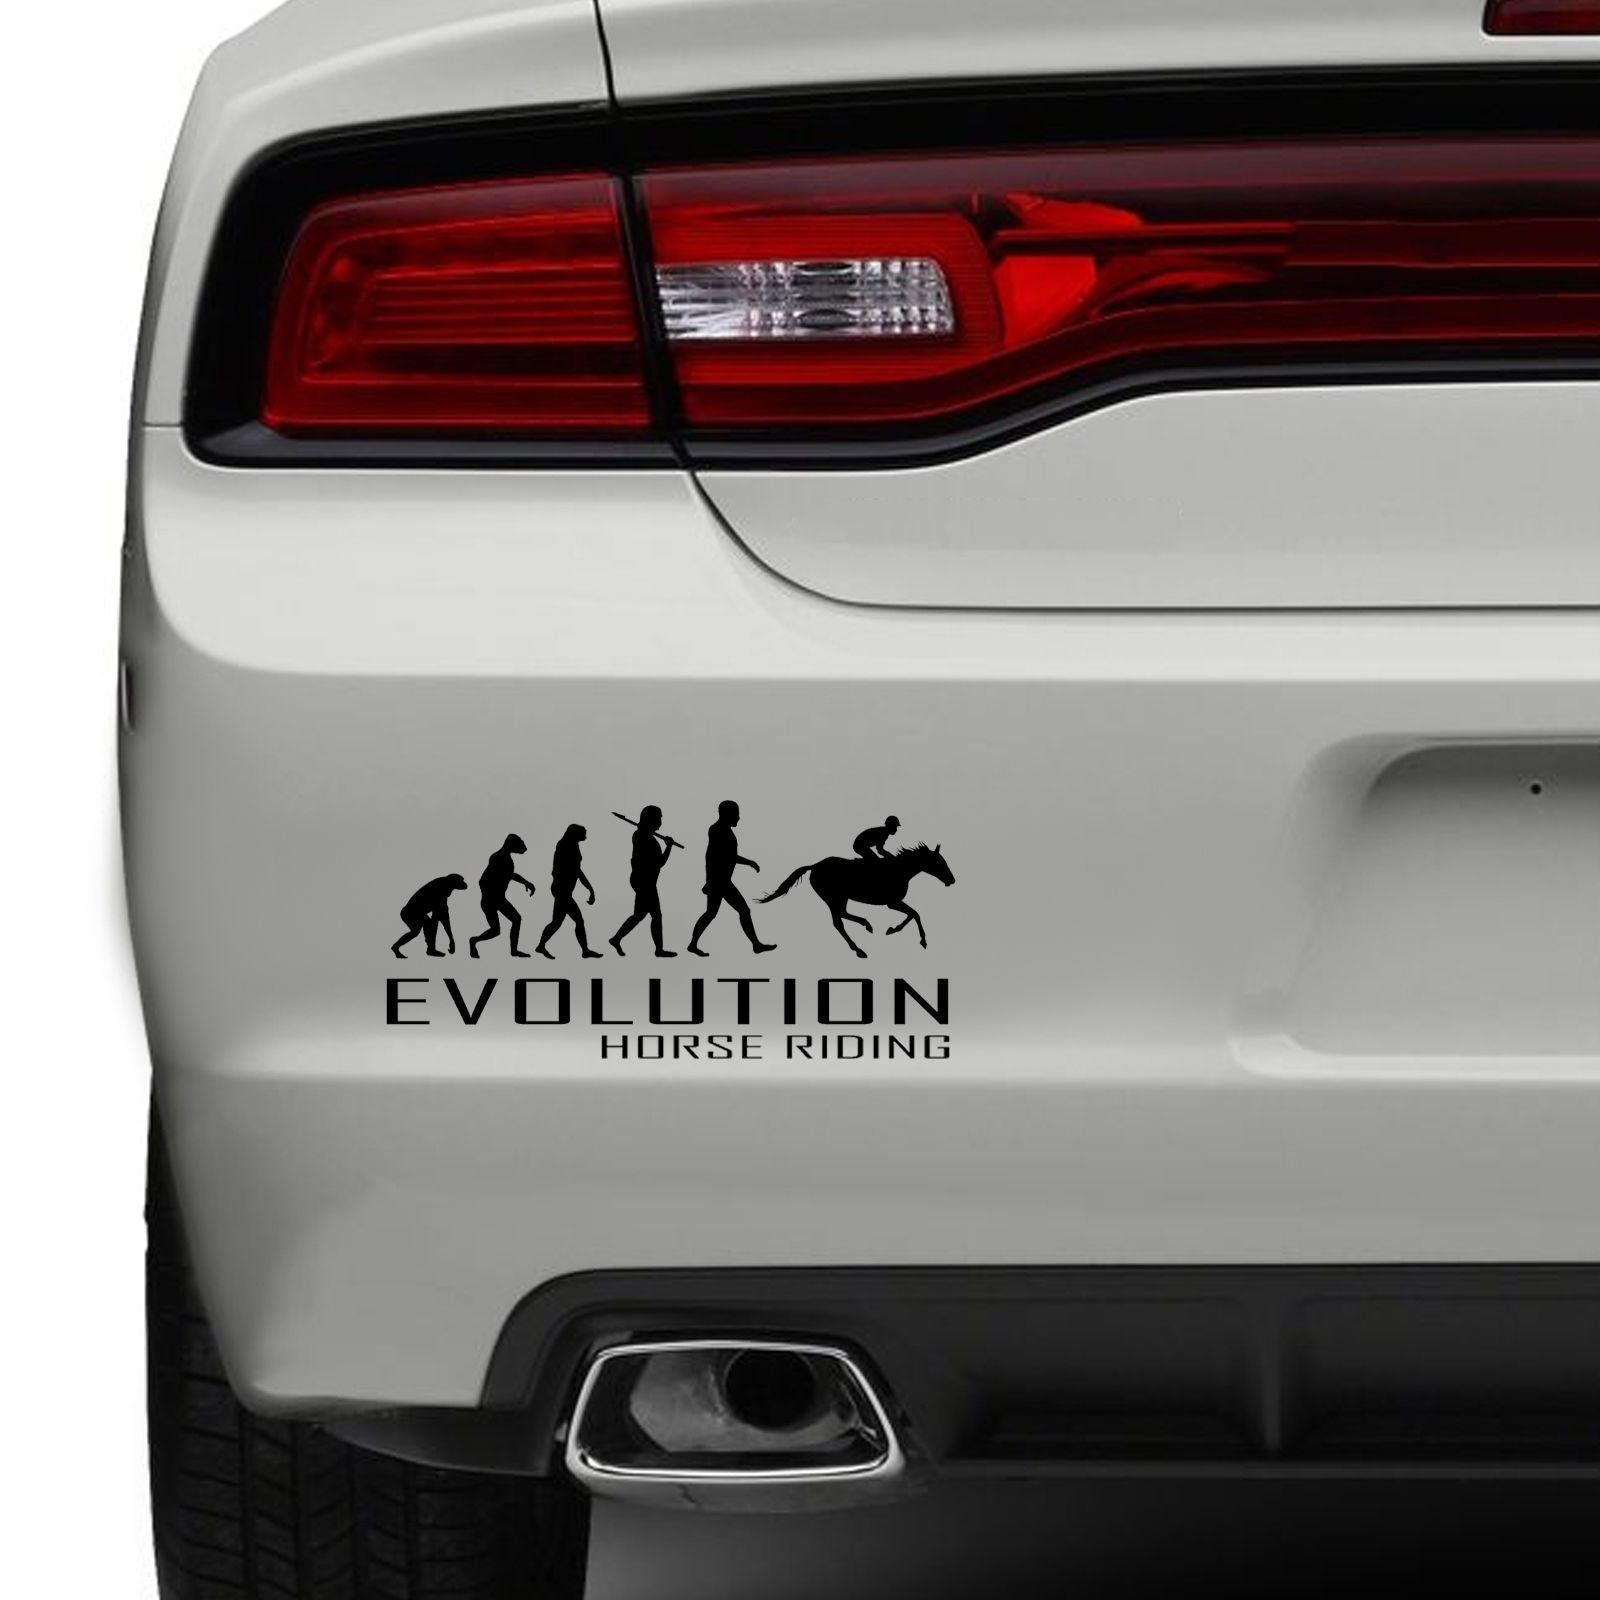 Evolution of horse riding car bumper sticker ride jockey tail funny vinyl window the clothing shed